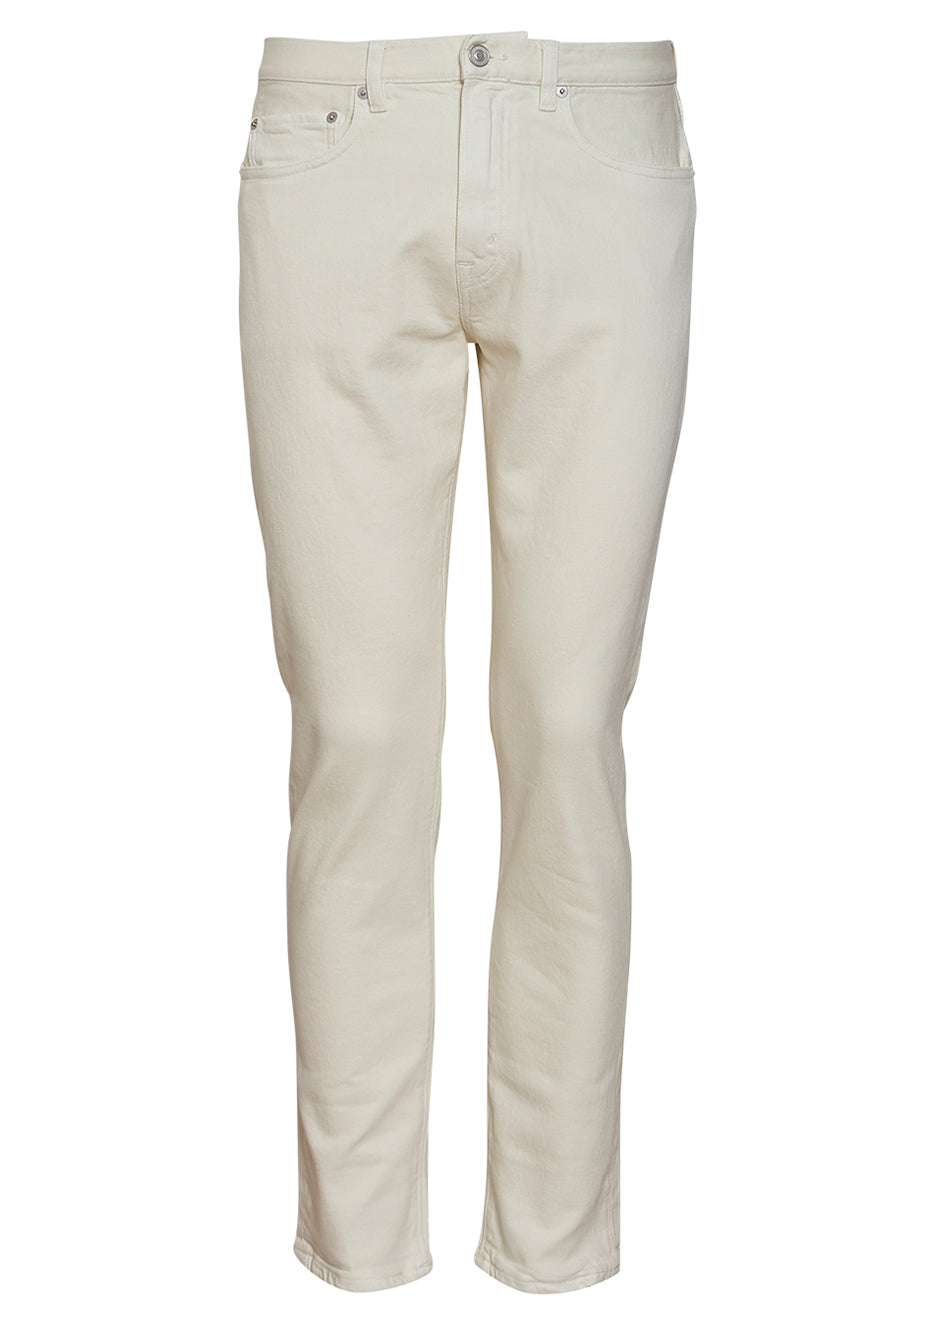 TM005 Yellow White Tapered Jeans